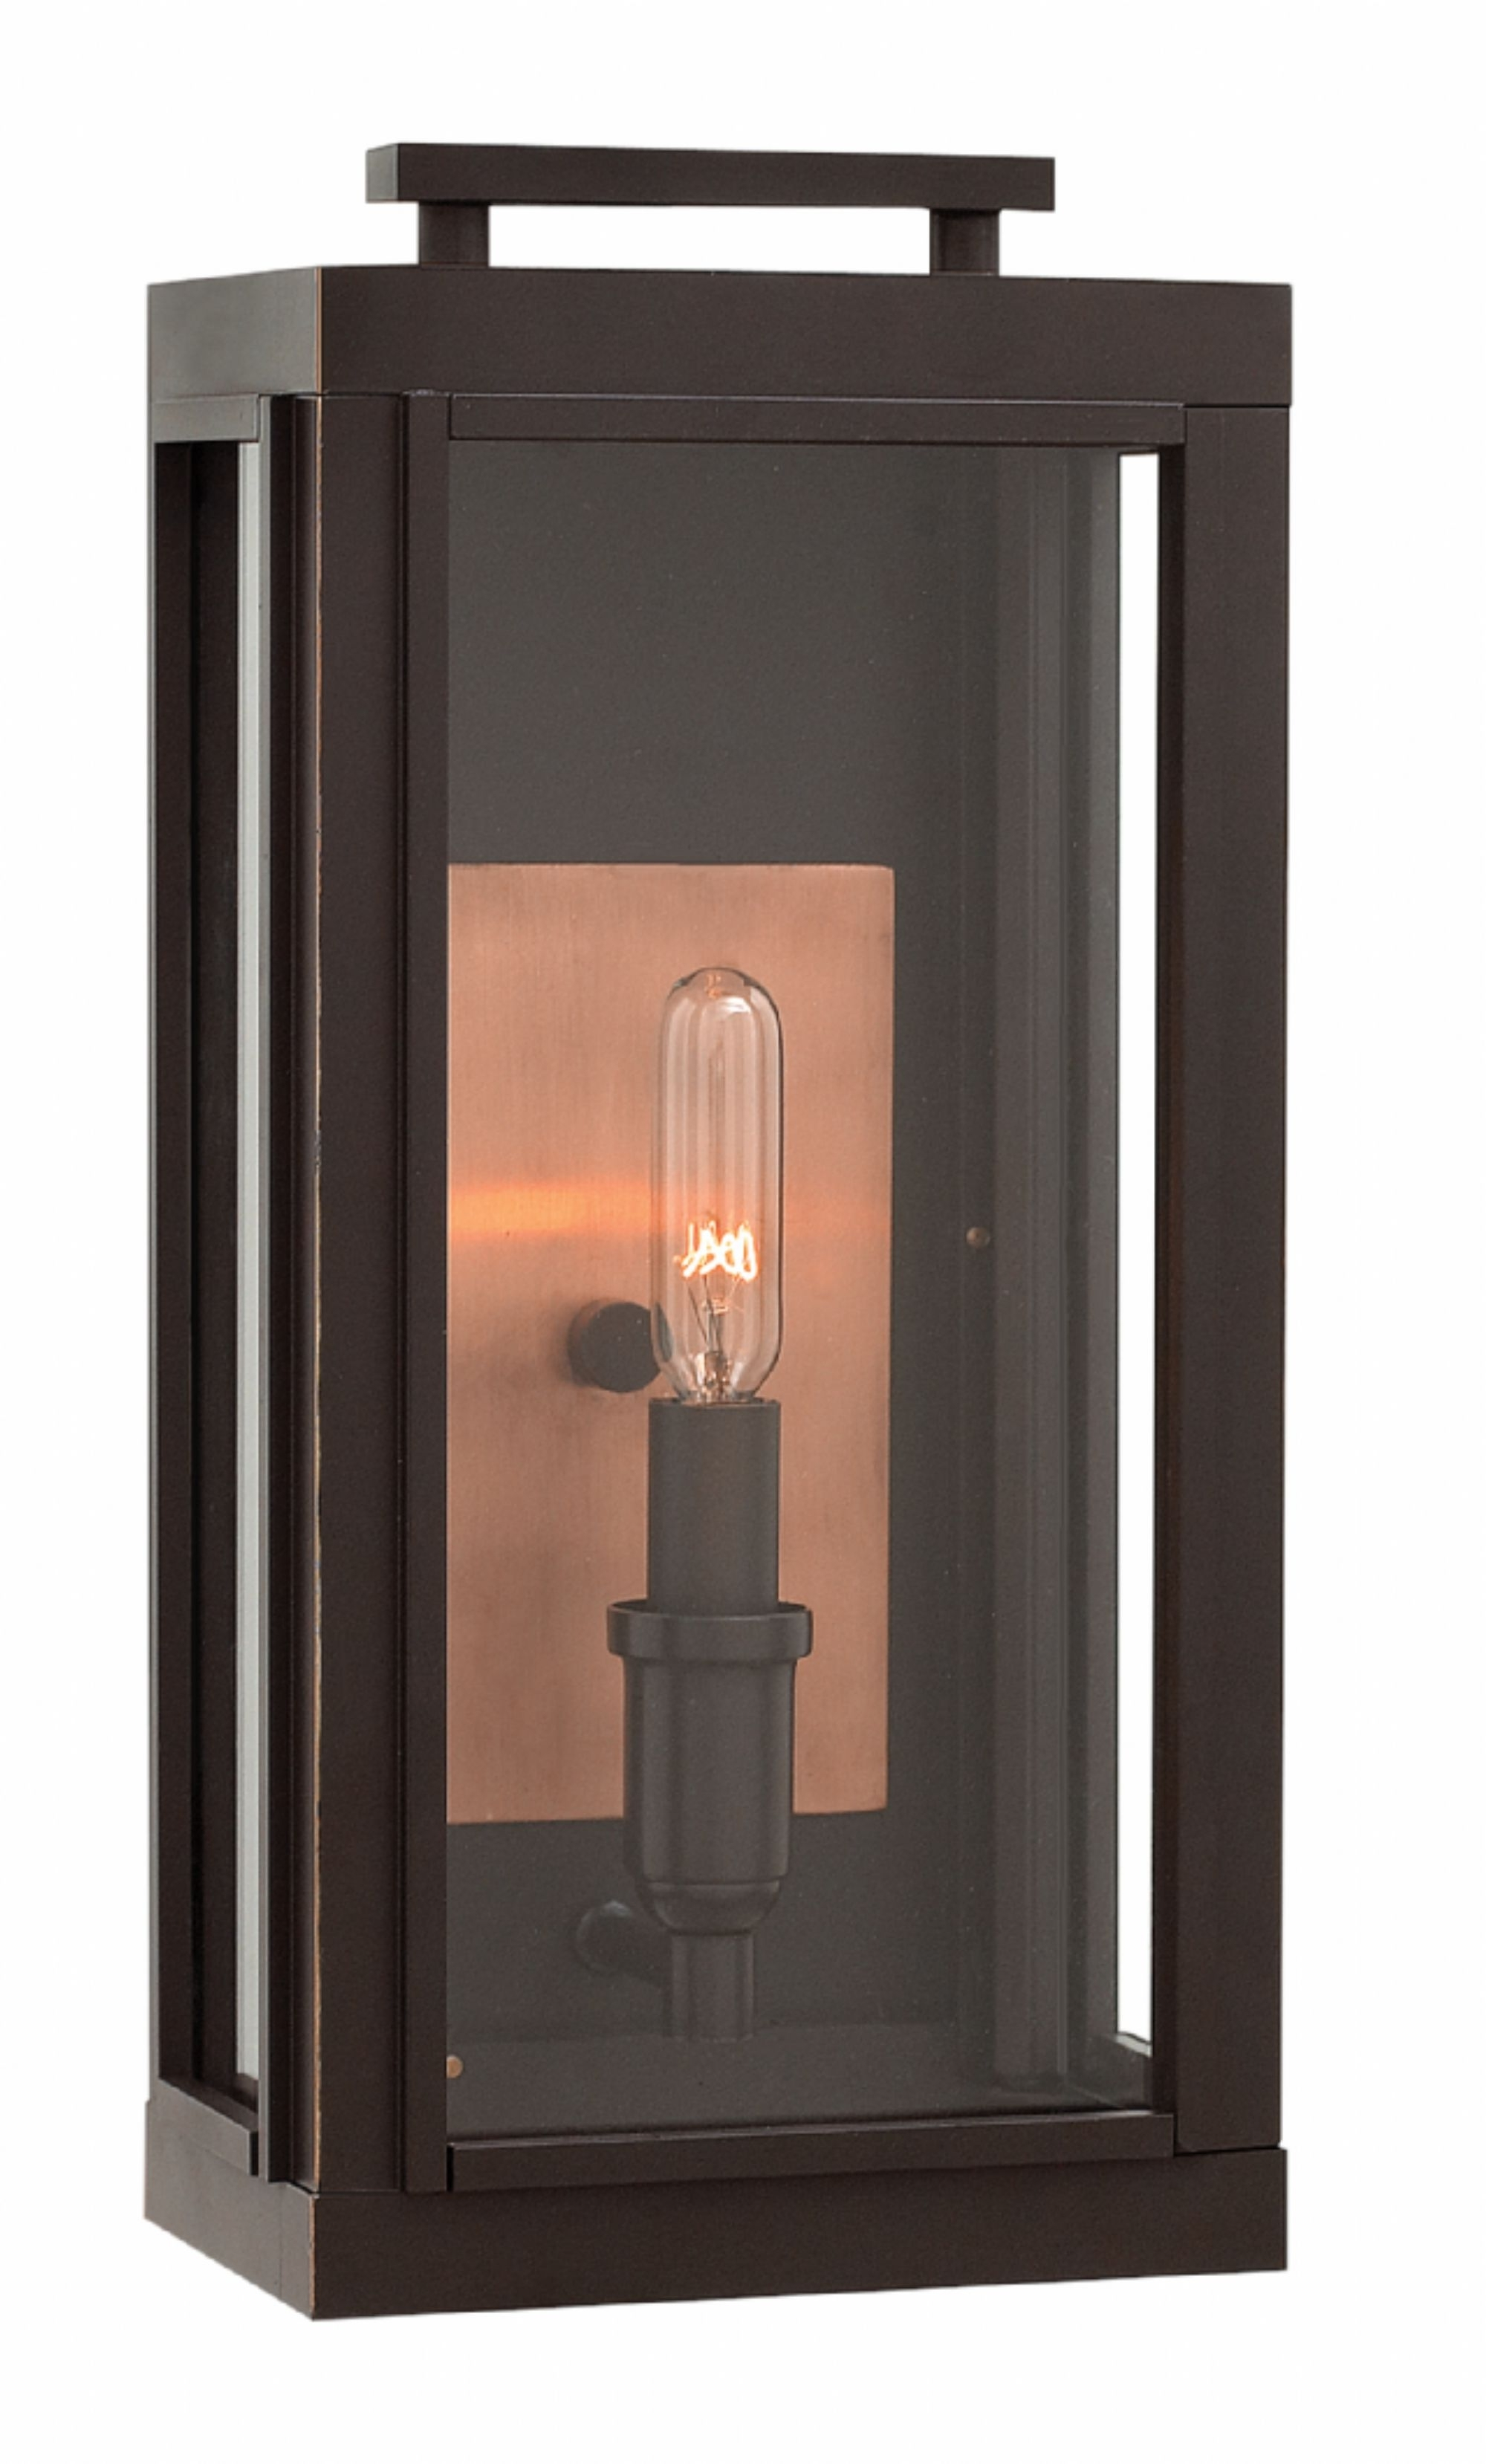 Oil Rubbed Bronze Sutcliffe > Exterior Wall Mount With Most Current Beach Outdoor Wall Lighting (View 13 of 20)